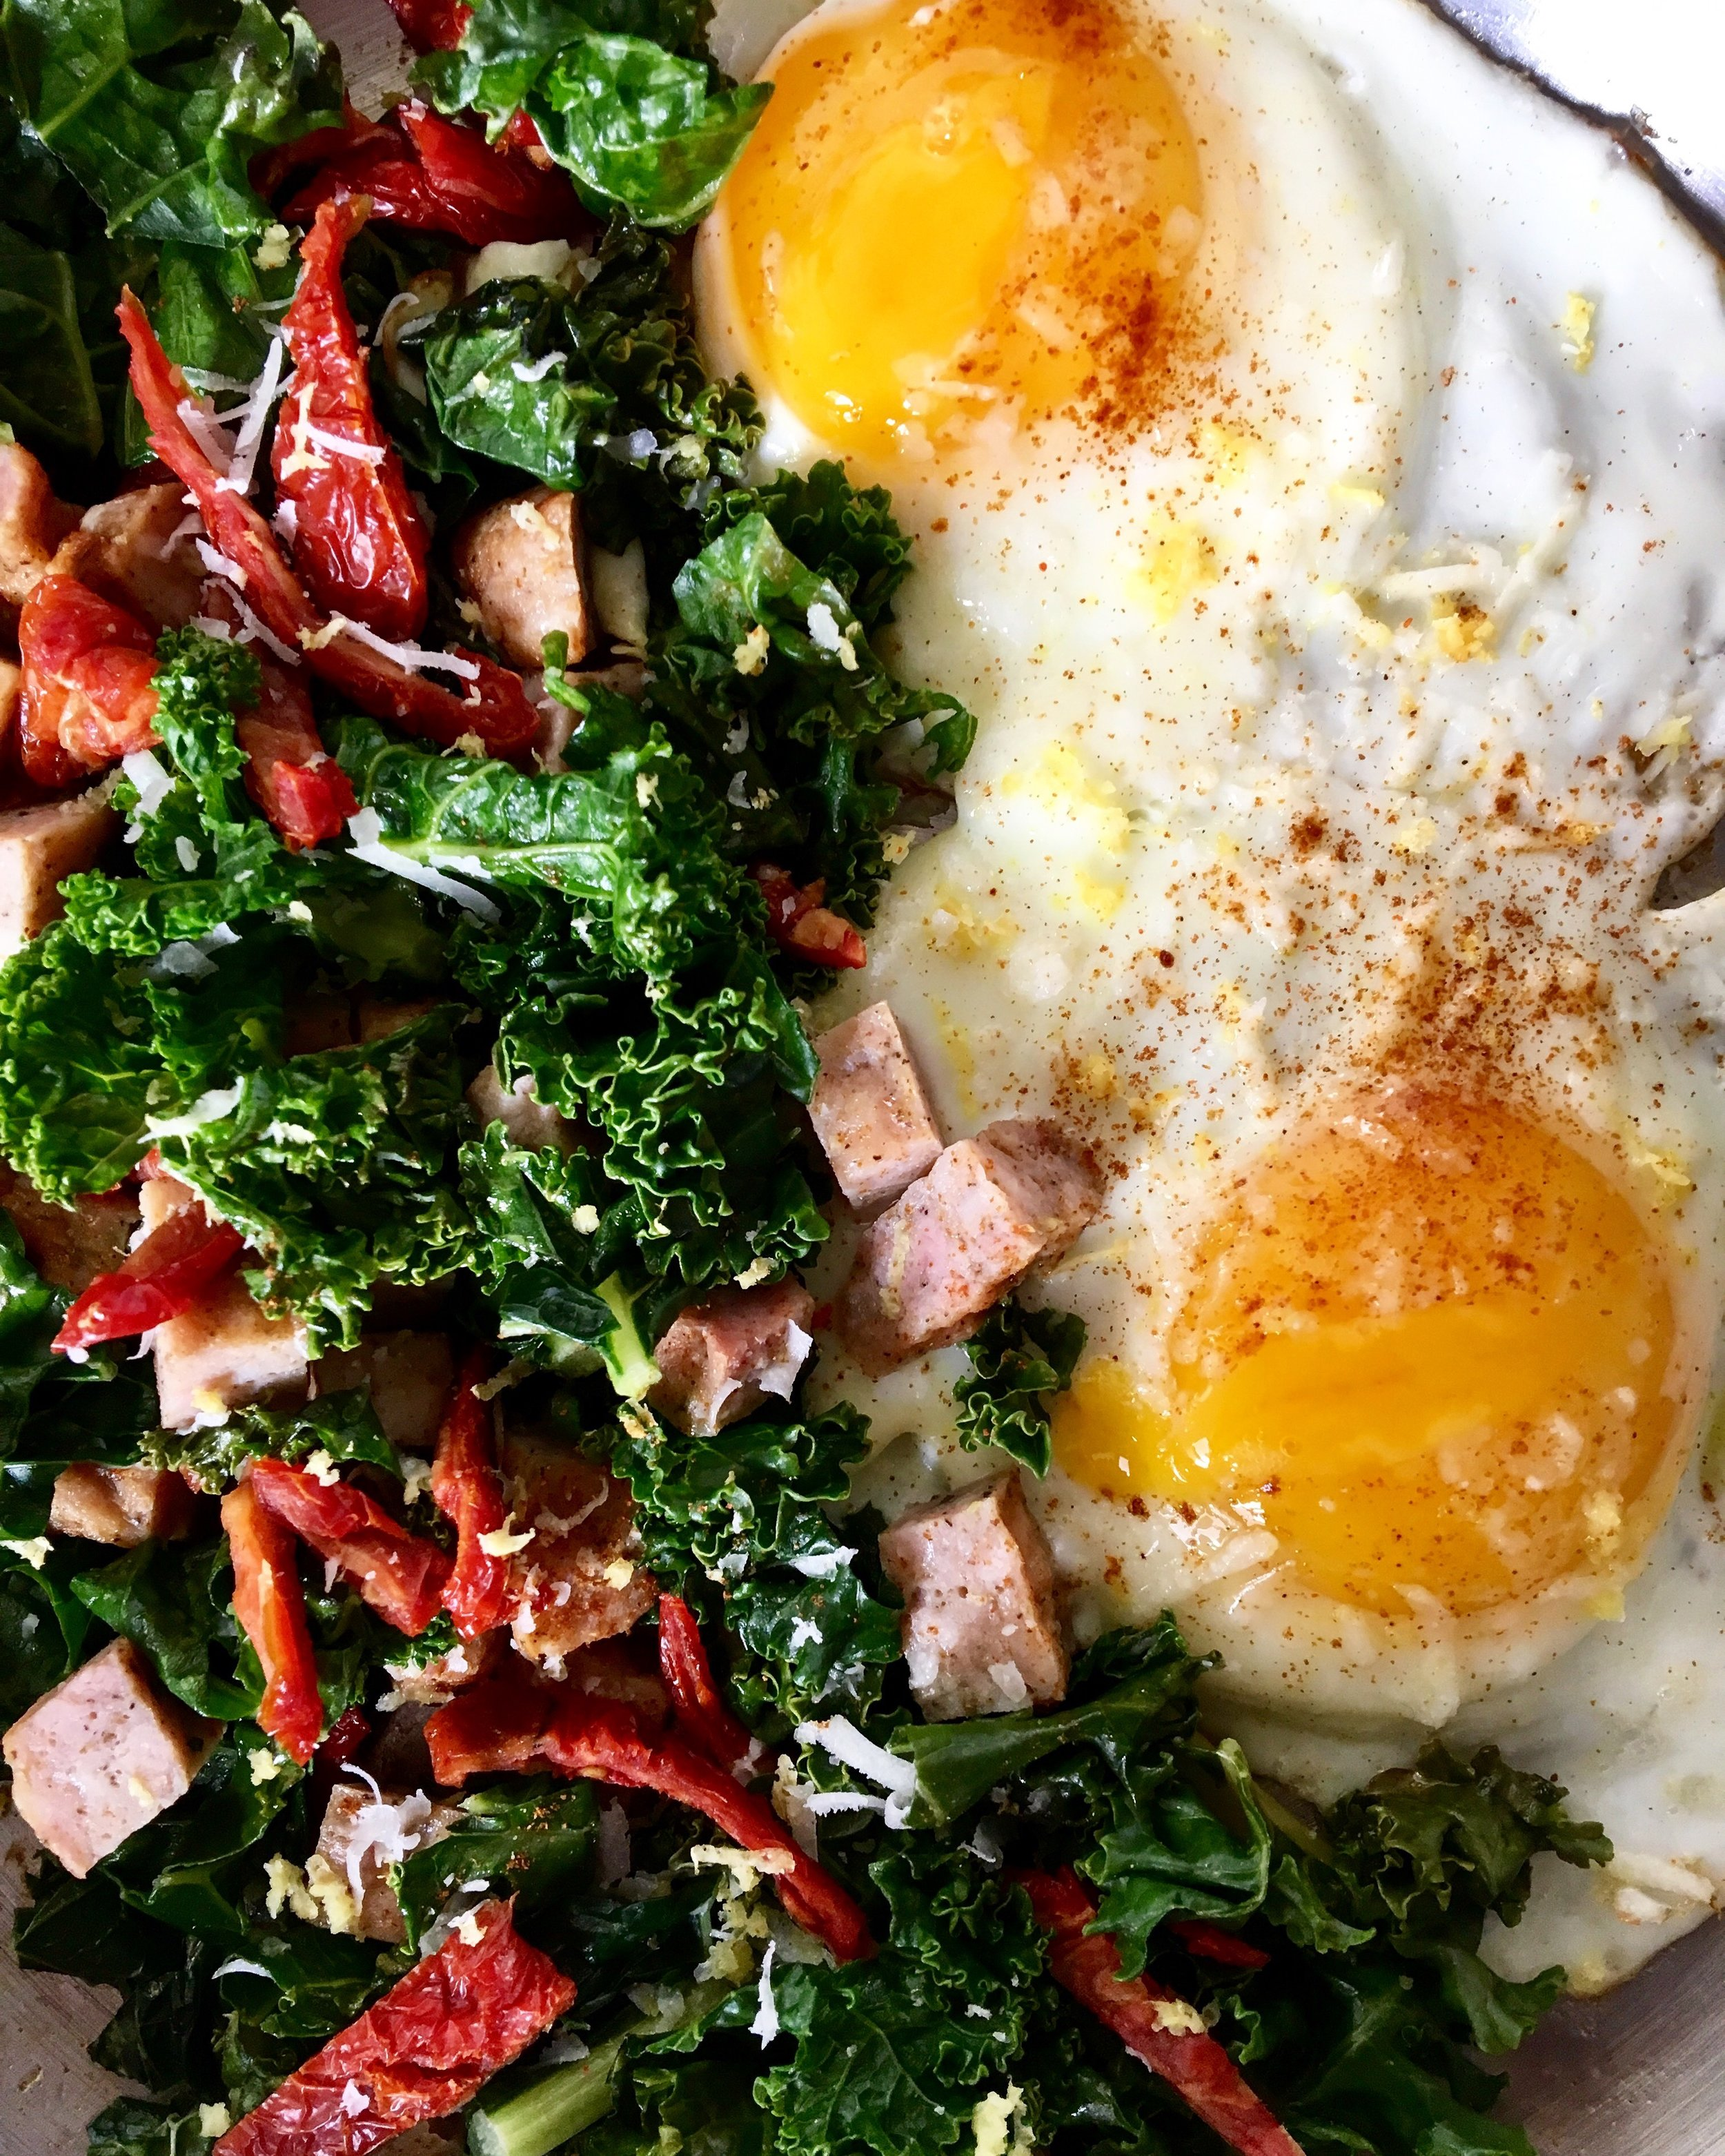 Sunnyside Up / Mixed Kale, Collard + Chard / Sun dried Tomato / Chicken Sausage